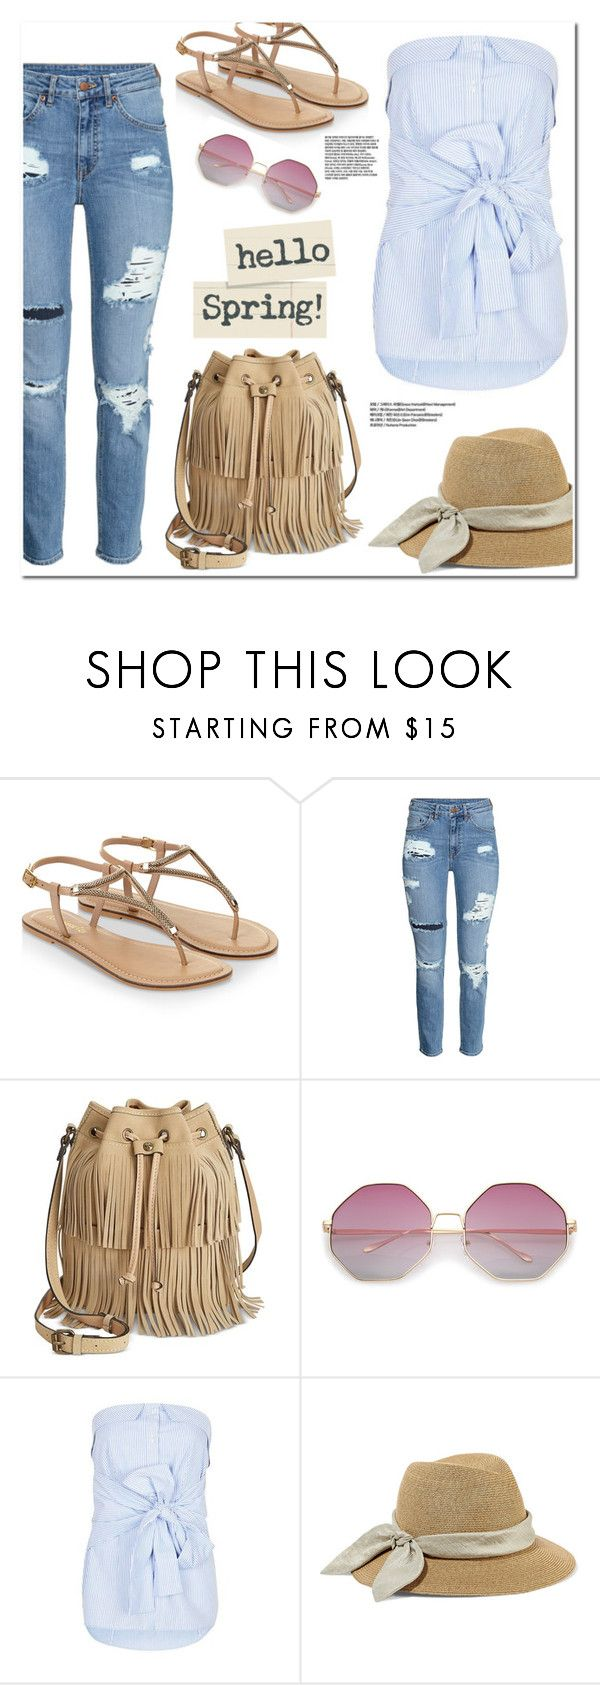 """""""Spring Look"""" by christinacastro830 ❤ liked on Polyvore featuring Accessorize, H&M, Patricia Nash, Topshop and Eugenia Kim"""